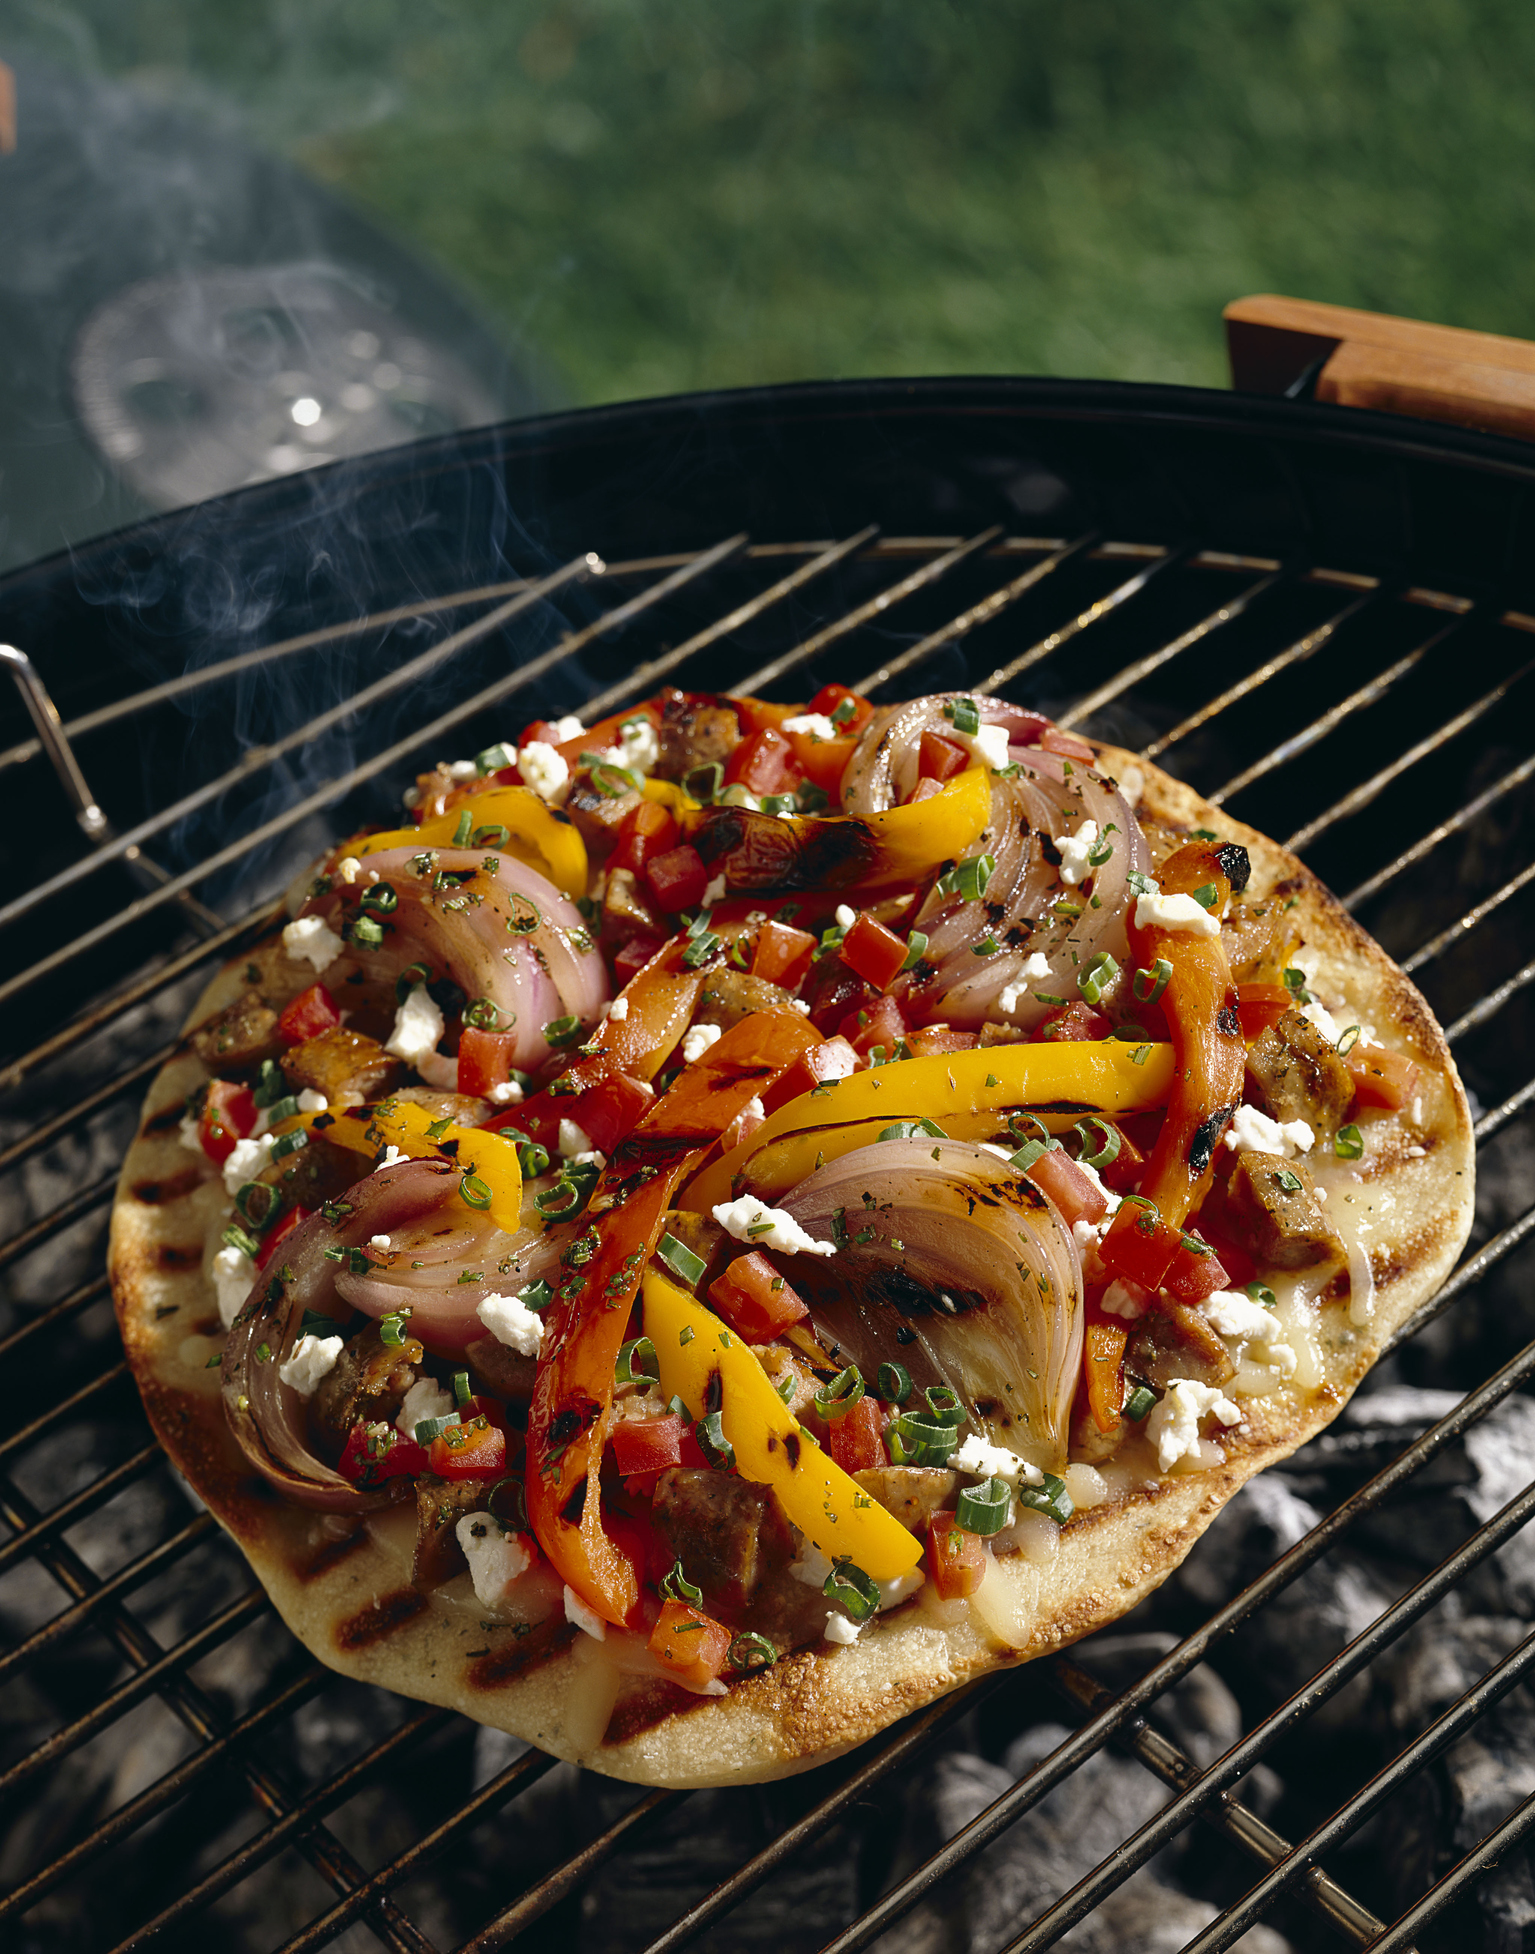 5. Grilled Pizza